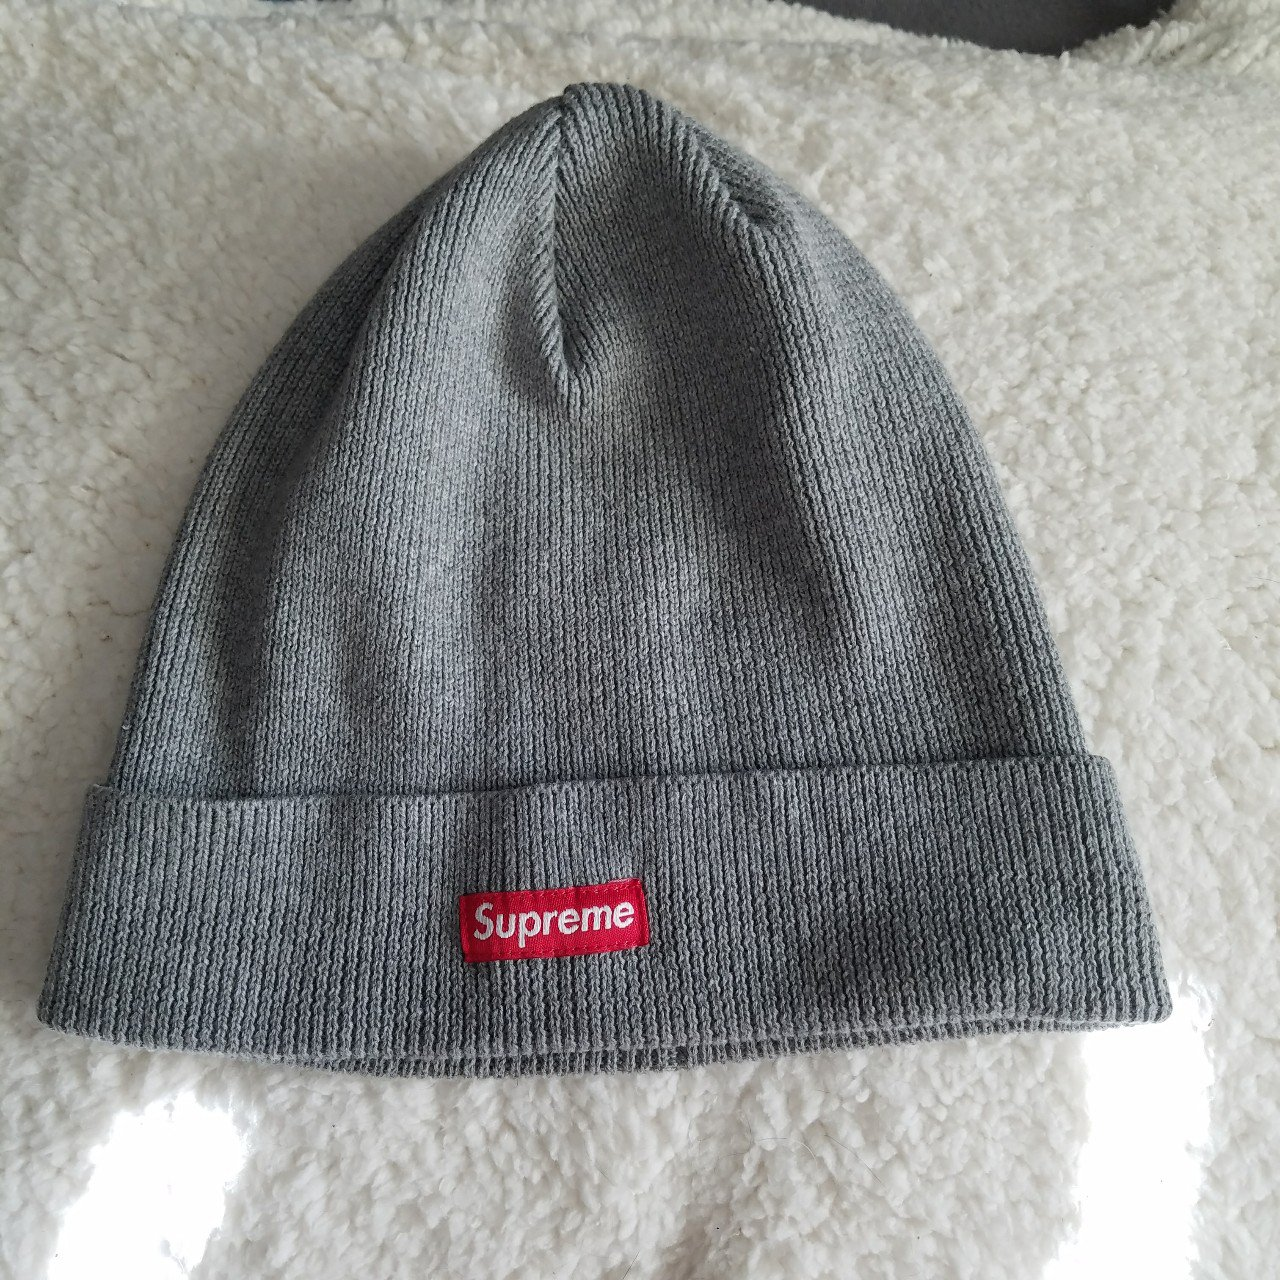 Supreme grey small box logo beanie from SS14 - deadstock - - Depop 2b42ed74d56